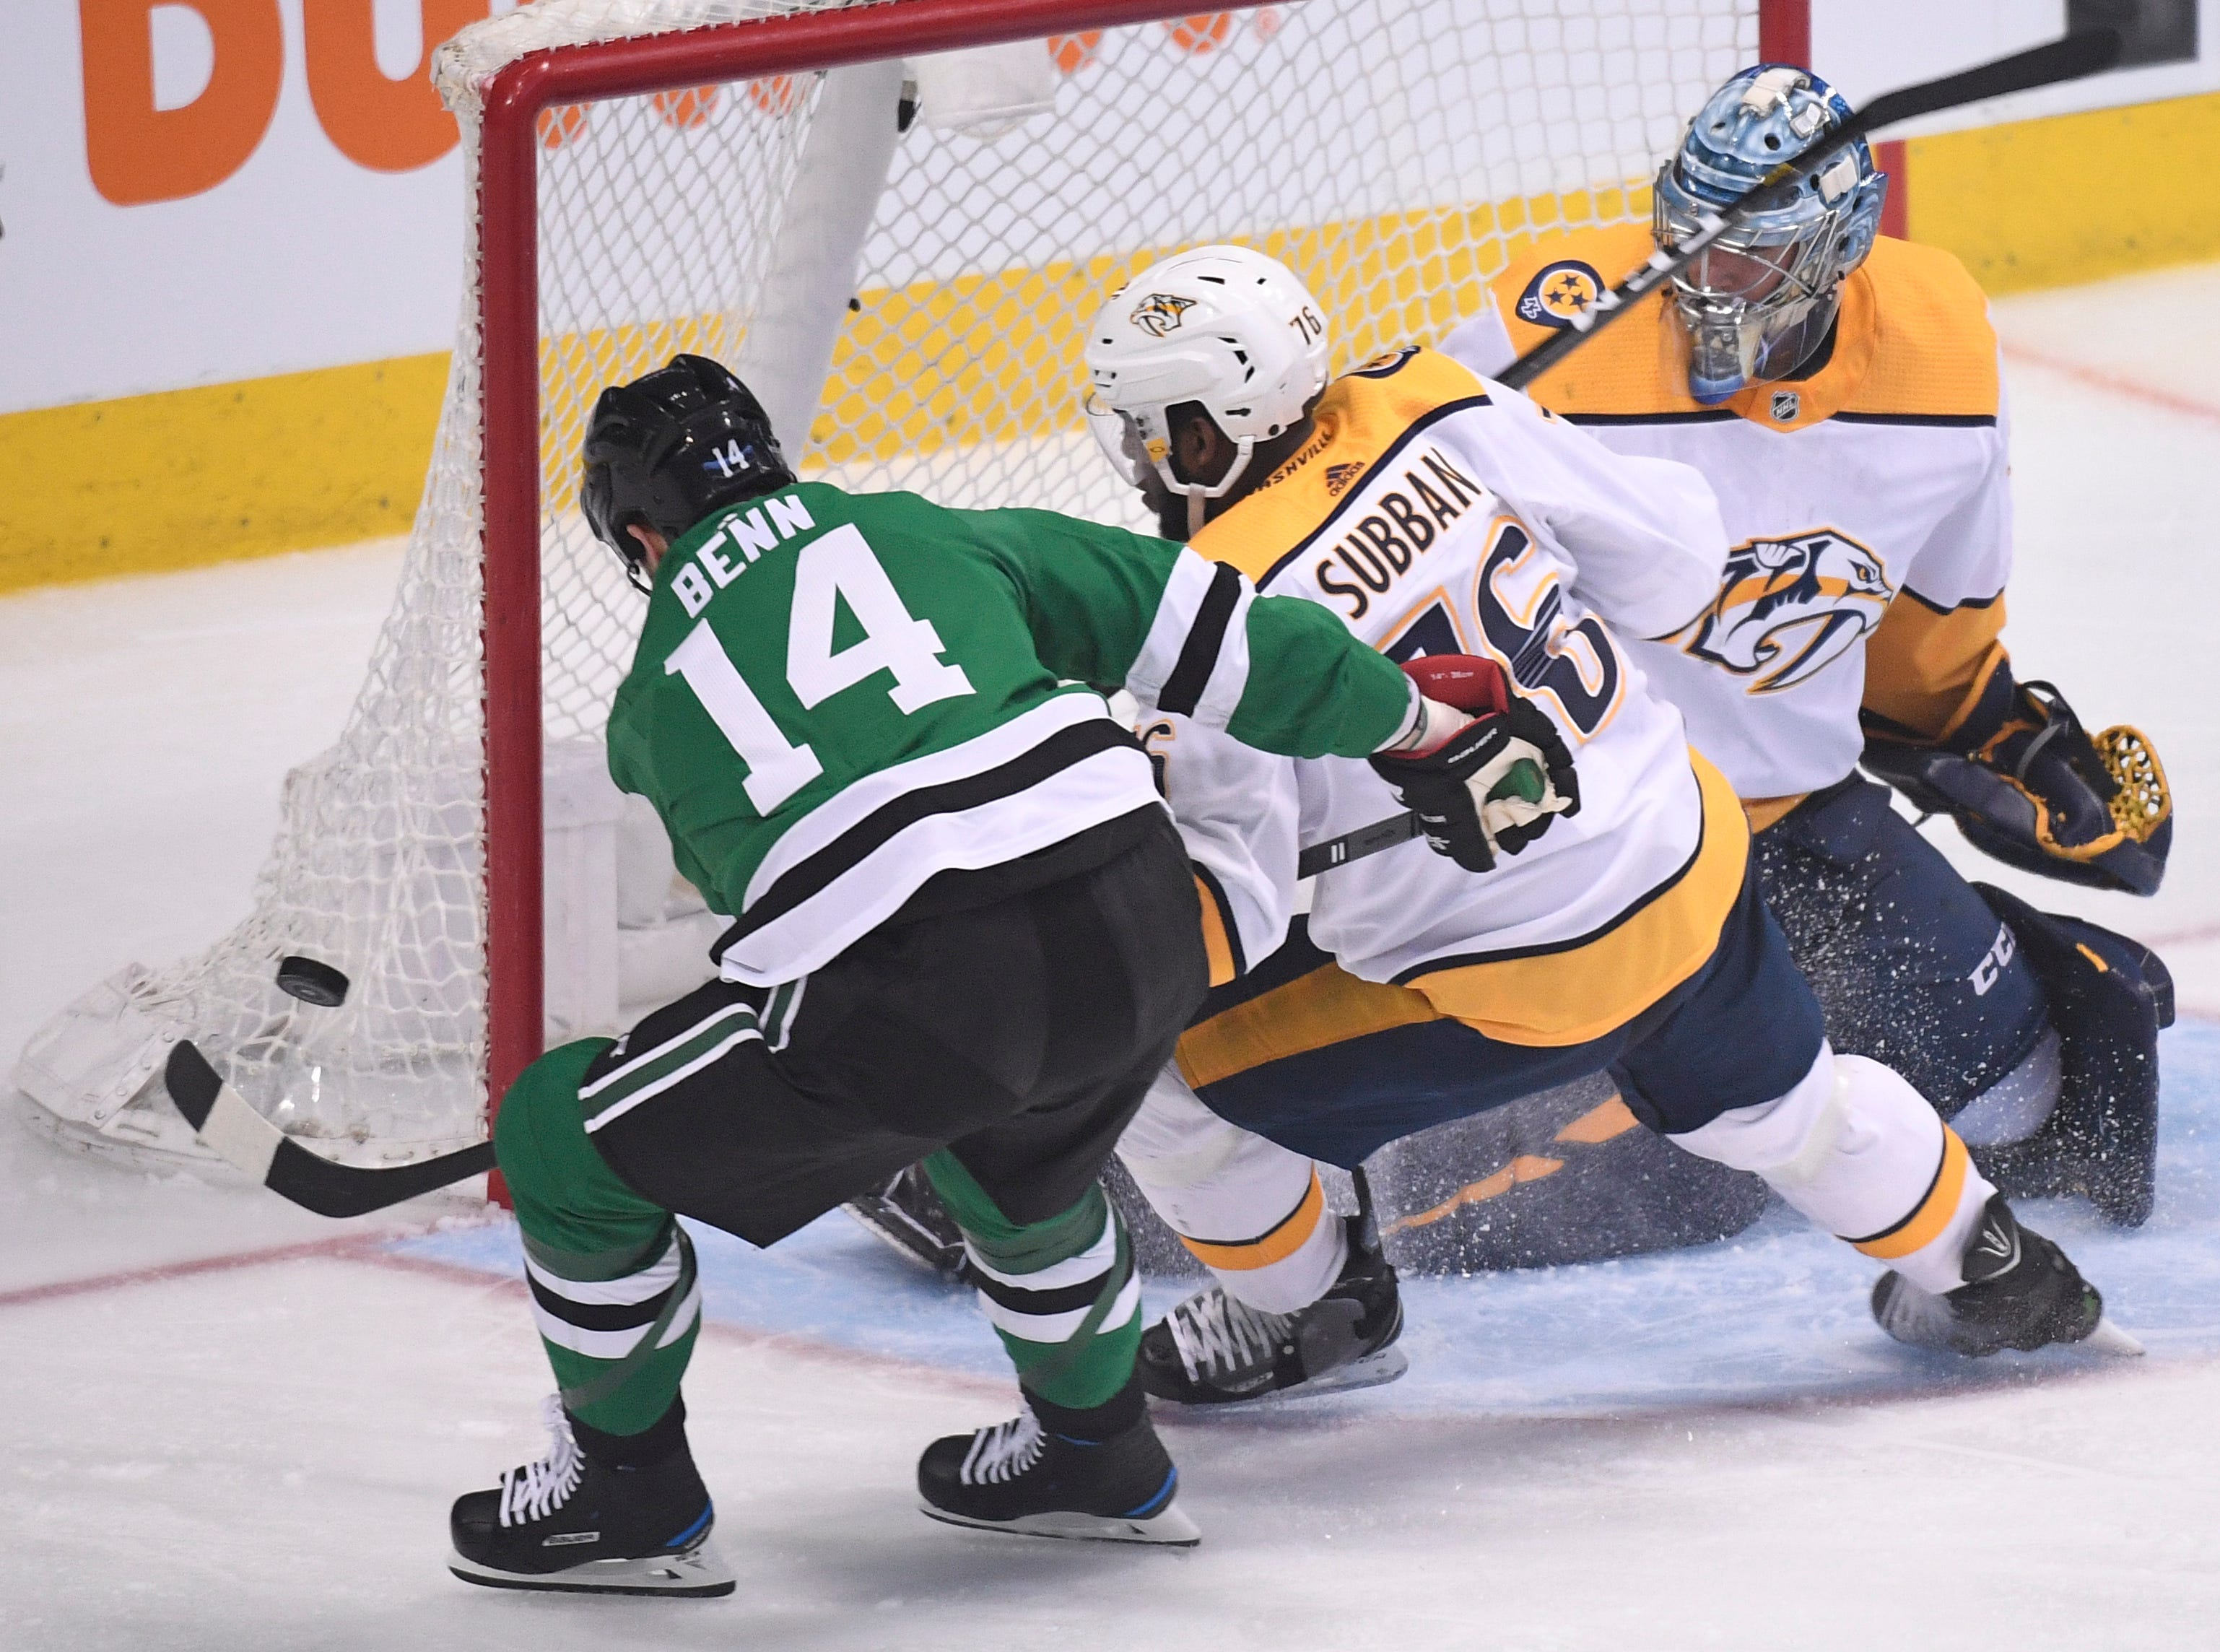 Dallas Stars left wing Jamie Benn (14) shoots wide of the net defended by Nashville Predators goaltender Pekka Rinne (35) and defenseman P.K. Subban (76) during the third period of the divisional semifinal game at the American Airlines Center in Dallas, Texas., Monday, April 15, 2019.